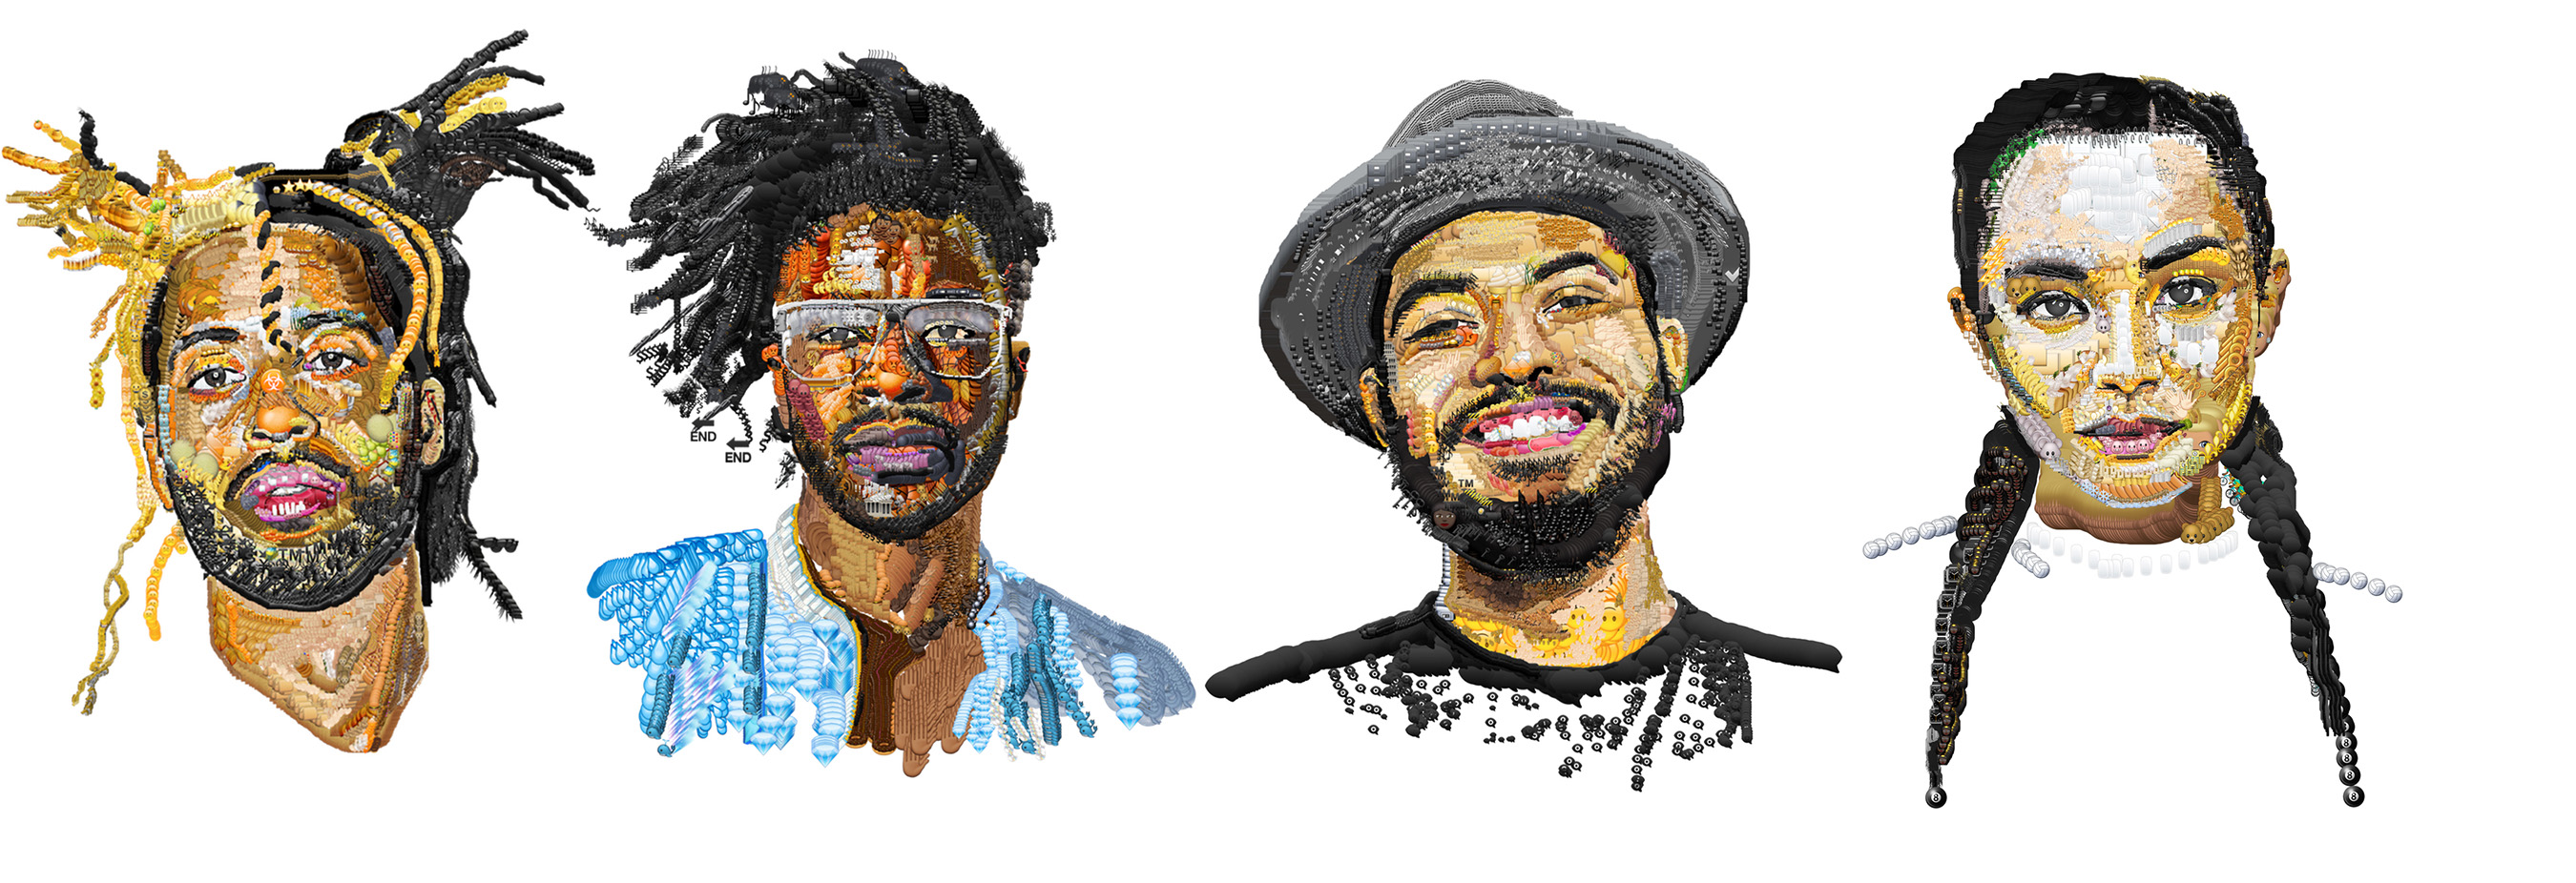 Visual Artist Yung Jake Emojifies LA's Emerging Talent for Street Campaign (from left to right: Mr. Carmack, Jesse Boykins III, Yung Jake, SOSUPERSAM)